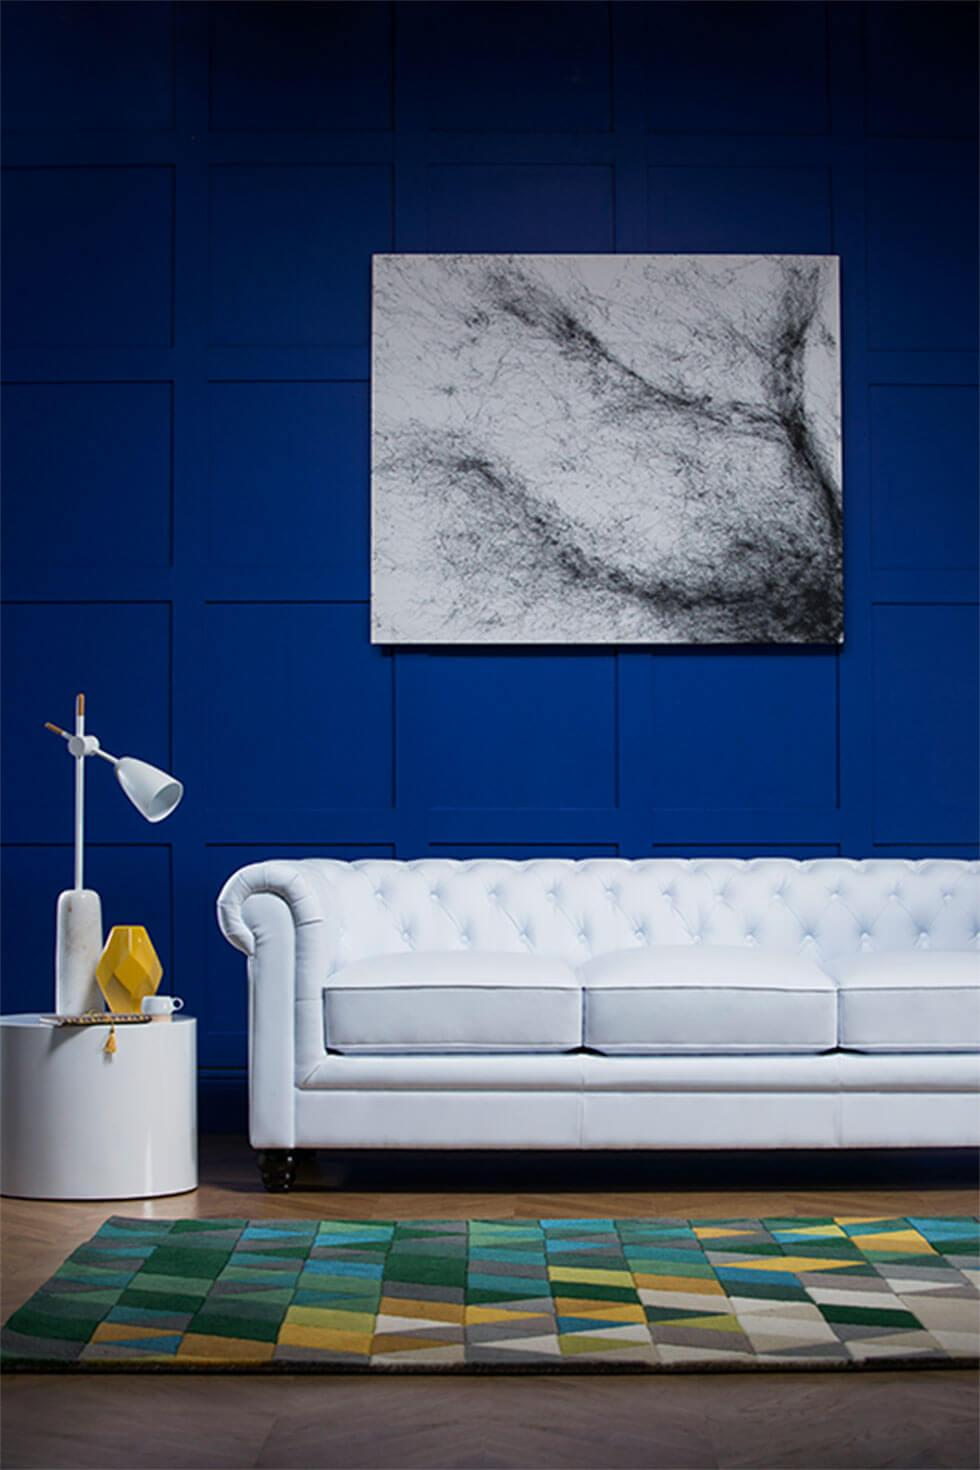 A white leather Chesterfield sofa in a living room with bold blue walls.